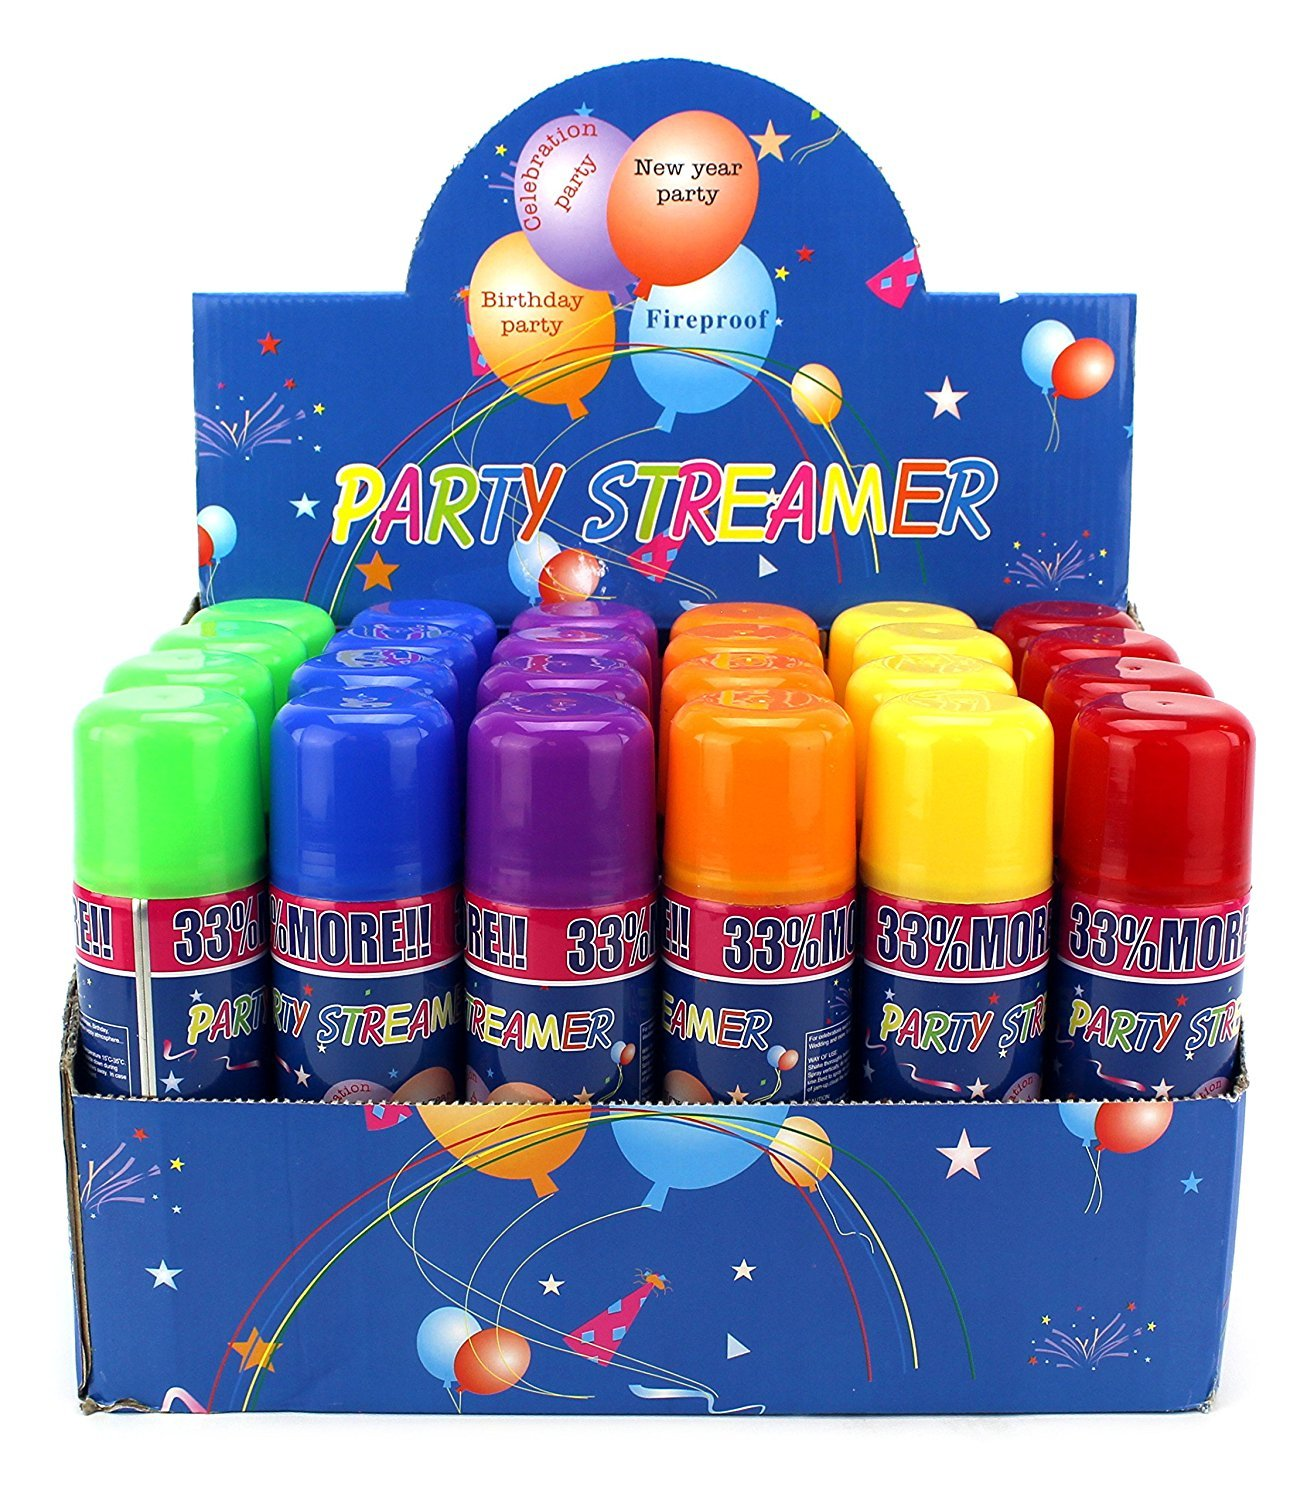 AJ Toys & Games 48 Pcs 2 Boxes of 24 Party Streamer Spray String In Cans, Children's Party Supplies, Perfect For Parties/Events